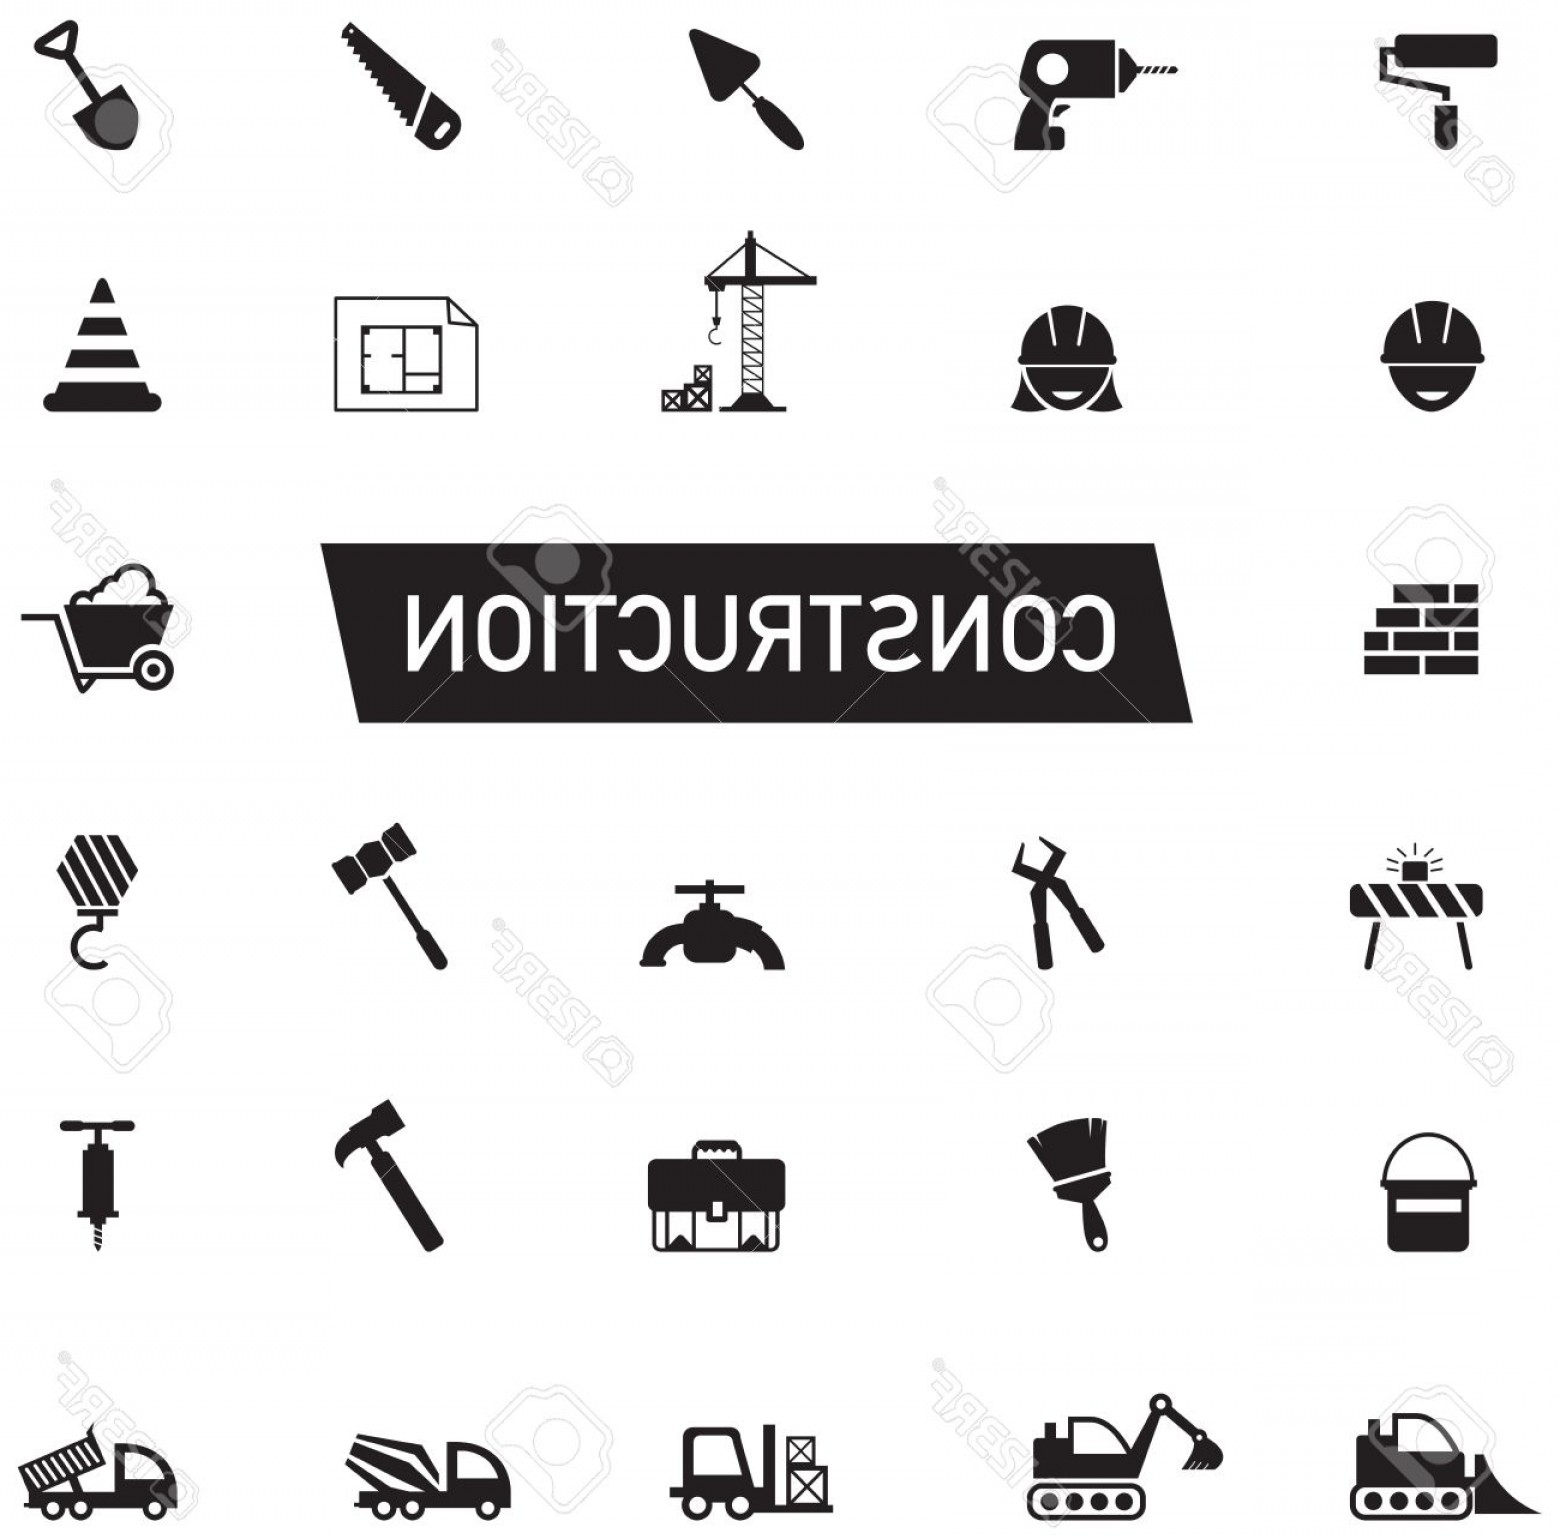 Vector Graphic Of Civil Engineering: Photostock Vector Silhouette Civil Engineering Maintenance Labor Excavator Transport And Construction Site Industry Gr